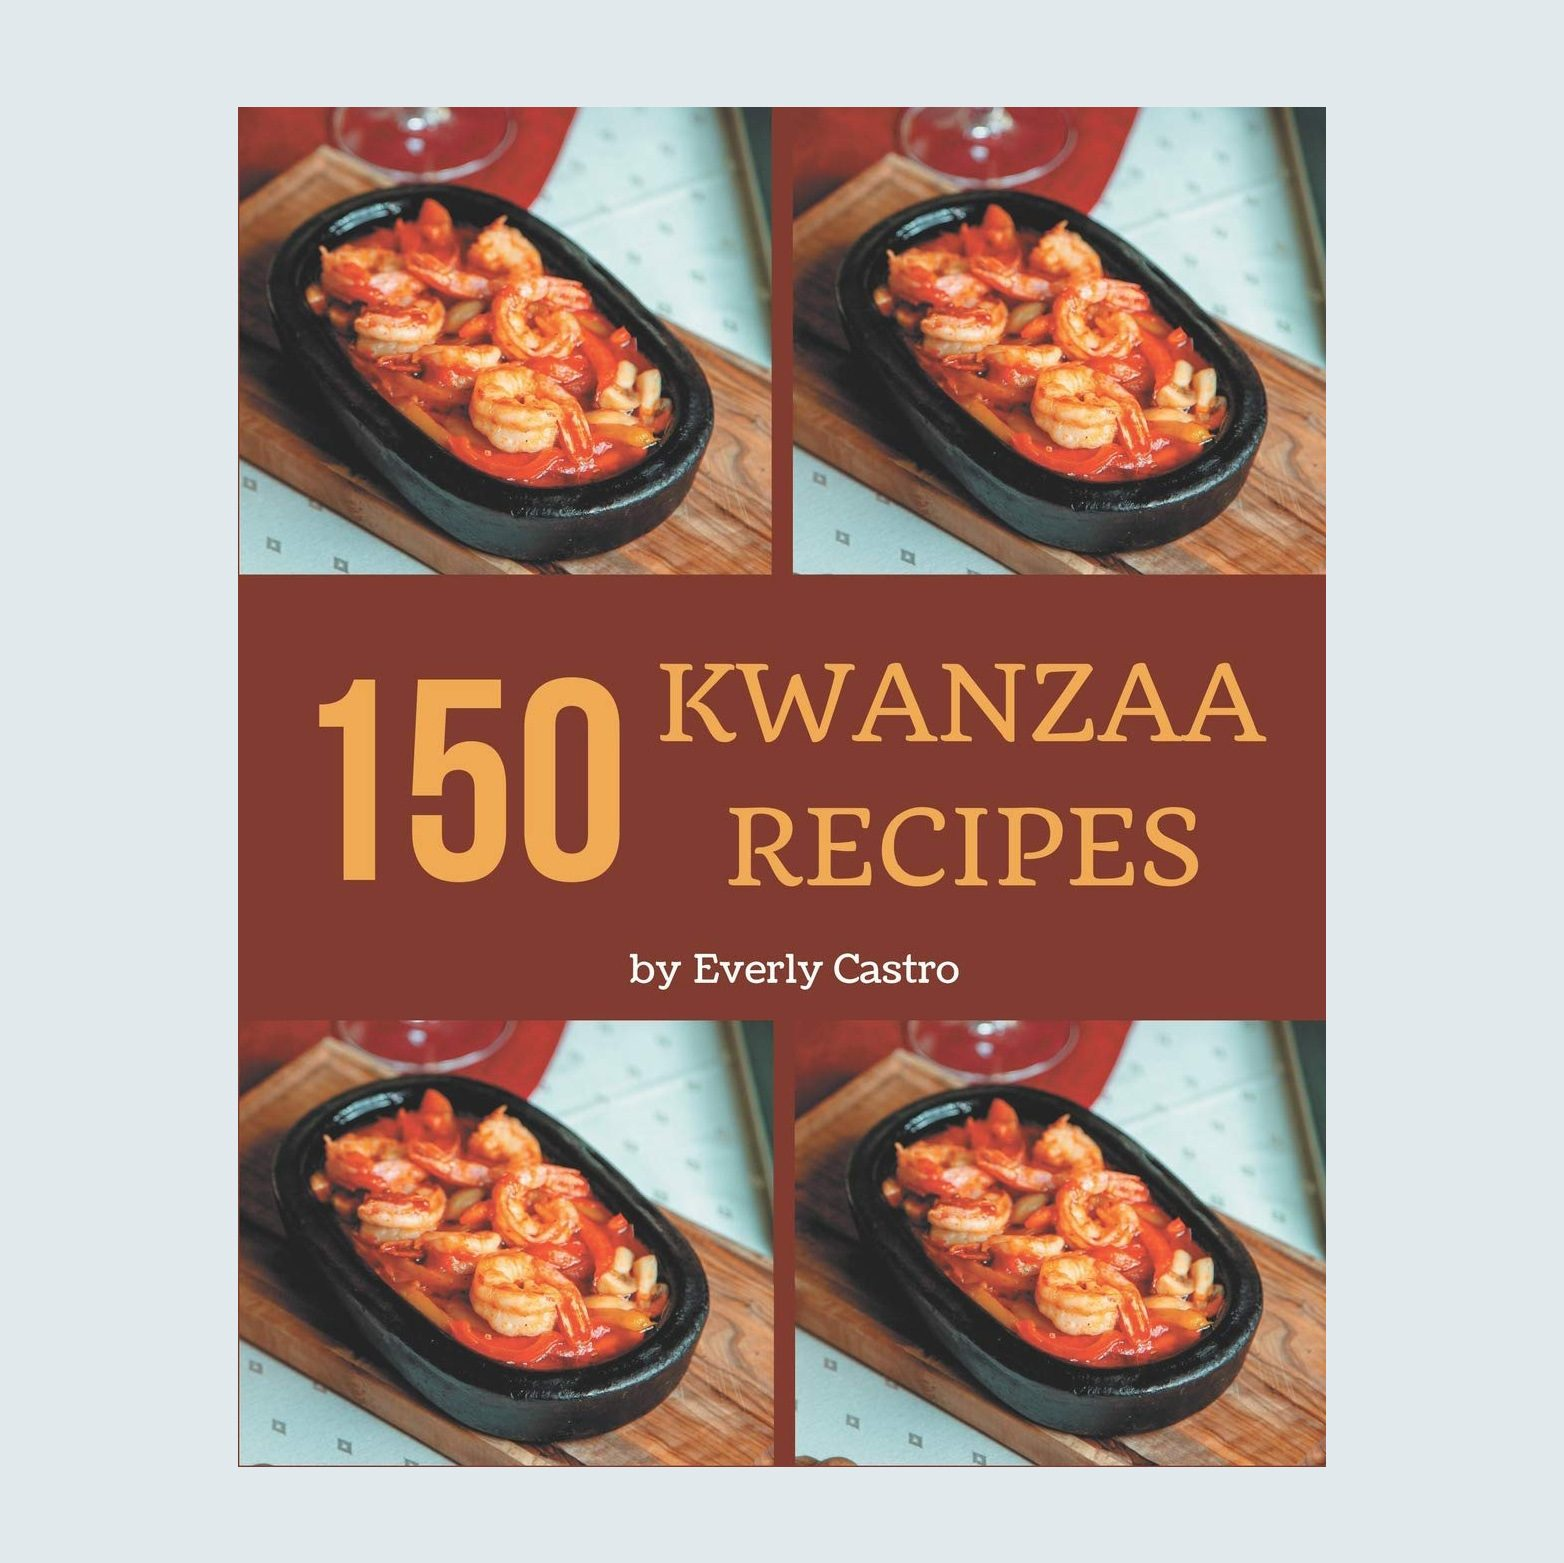 150 Kwanzaa Recipes